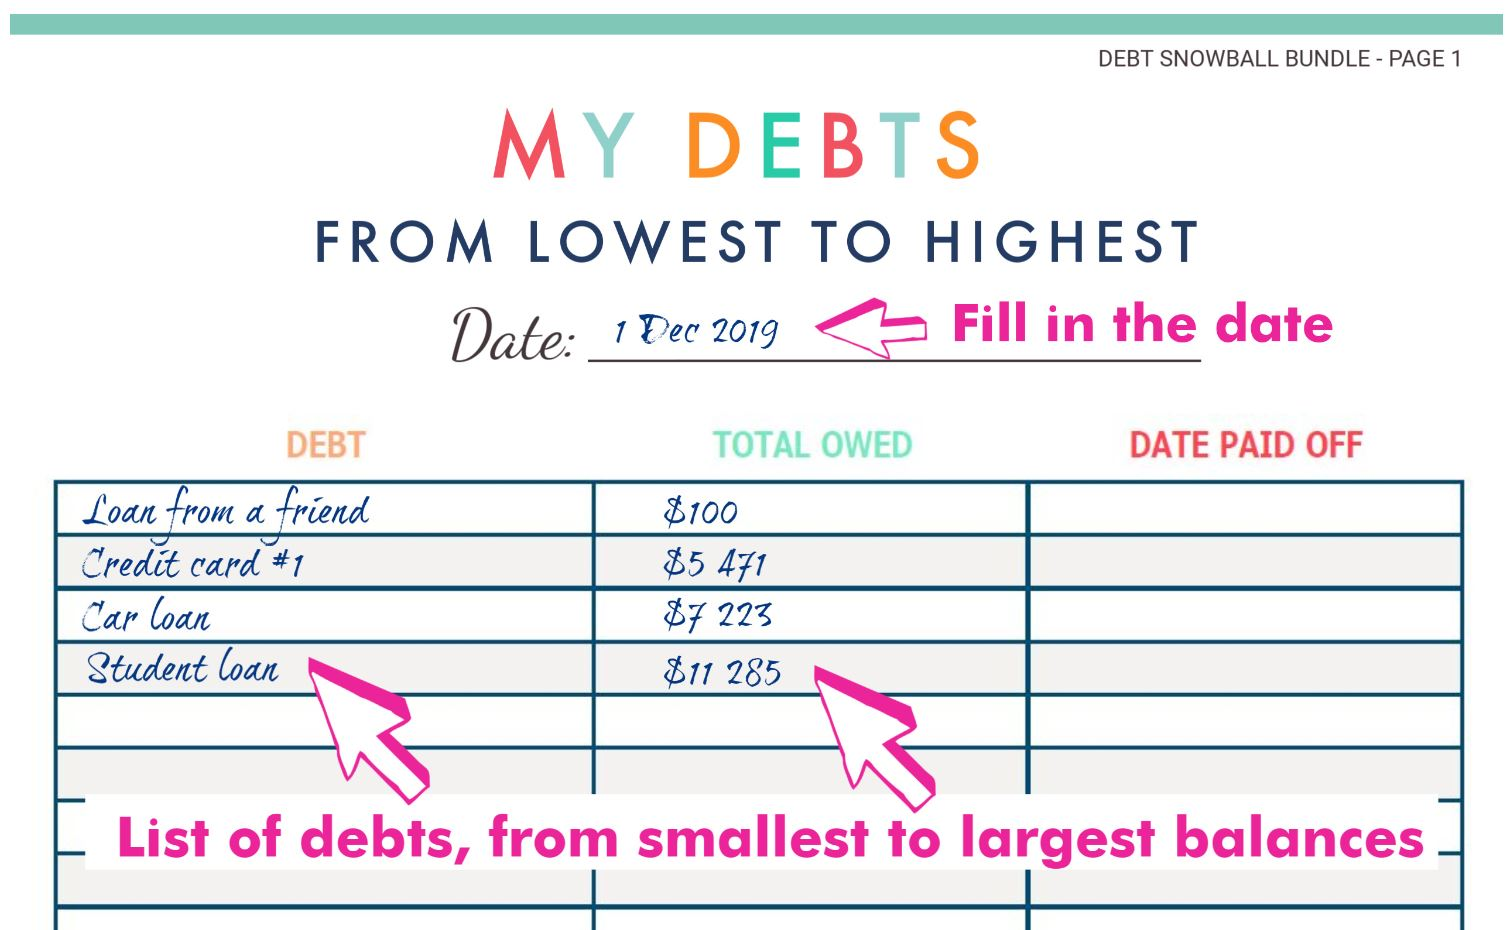 How To Get Out Of Debt With The Debt Snowball Method